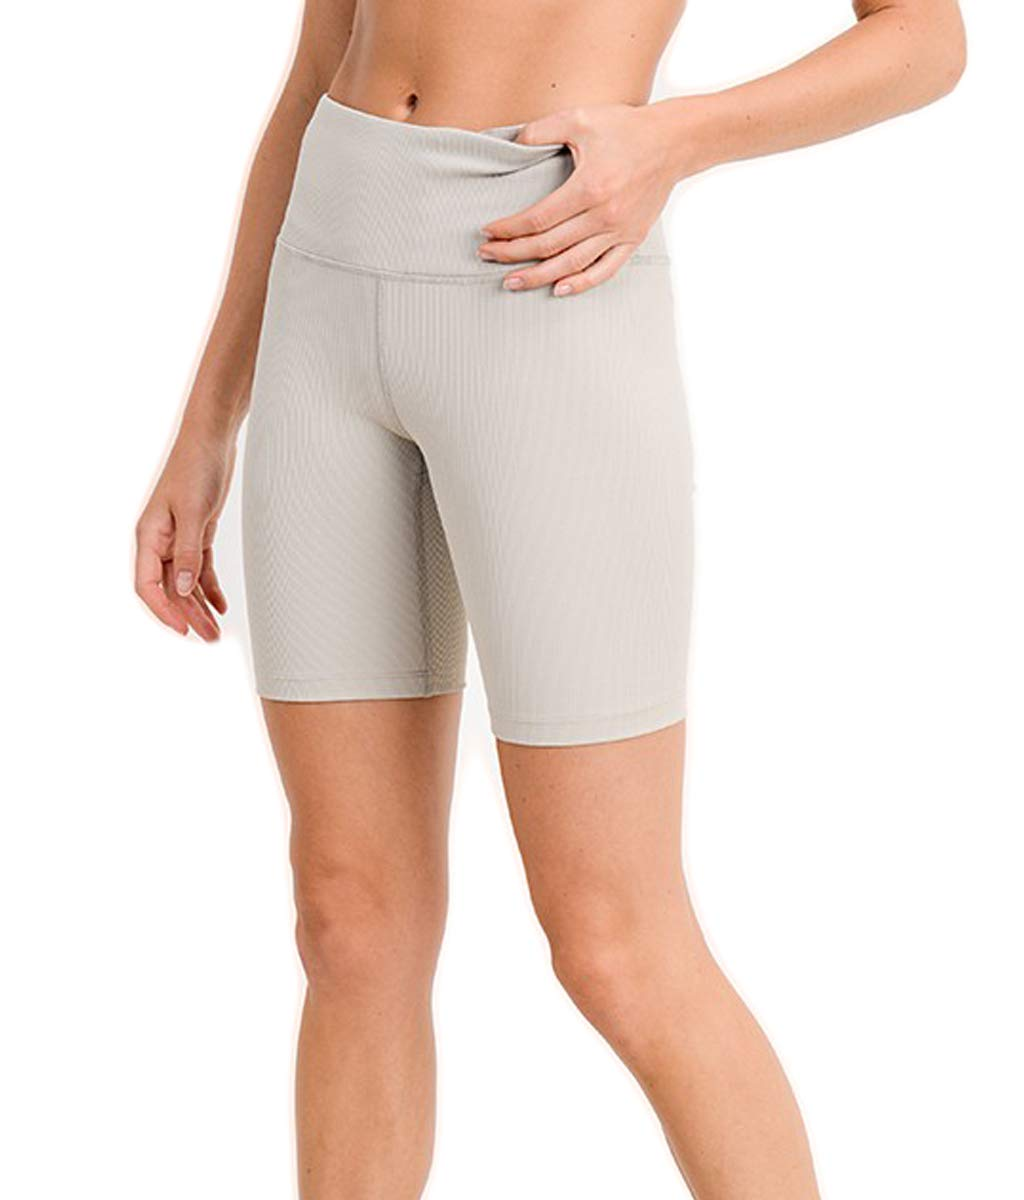 CNC STYLE B018 Women's Knee Length Stretchy Workout Yoga Ribbed Biker Shorts Leggings High Waisted Bermuda Tights, Grey, Medium by CNC STYLE